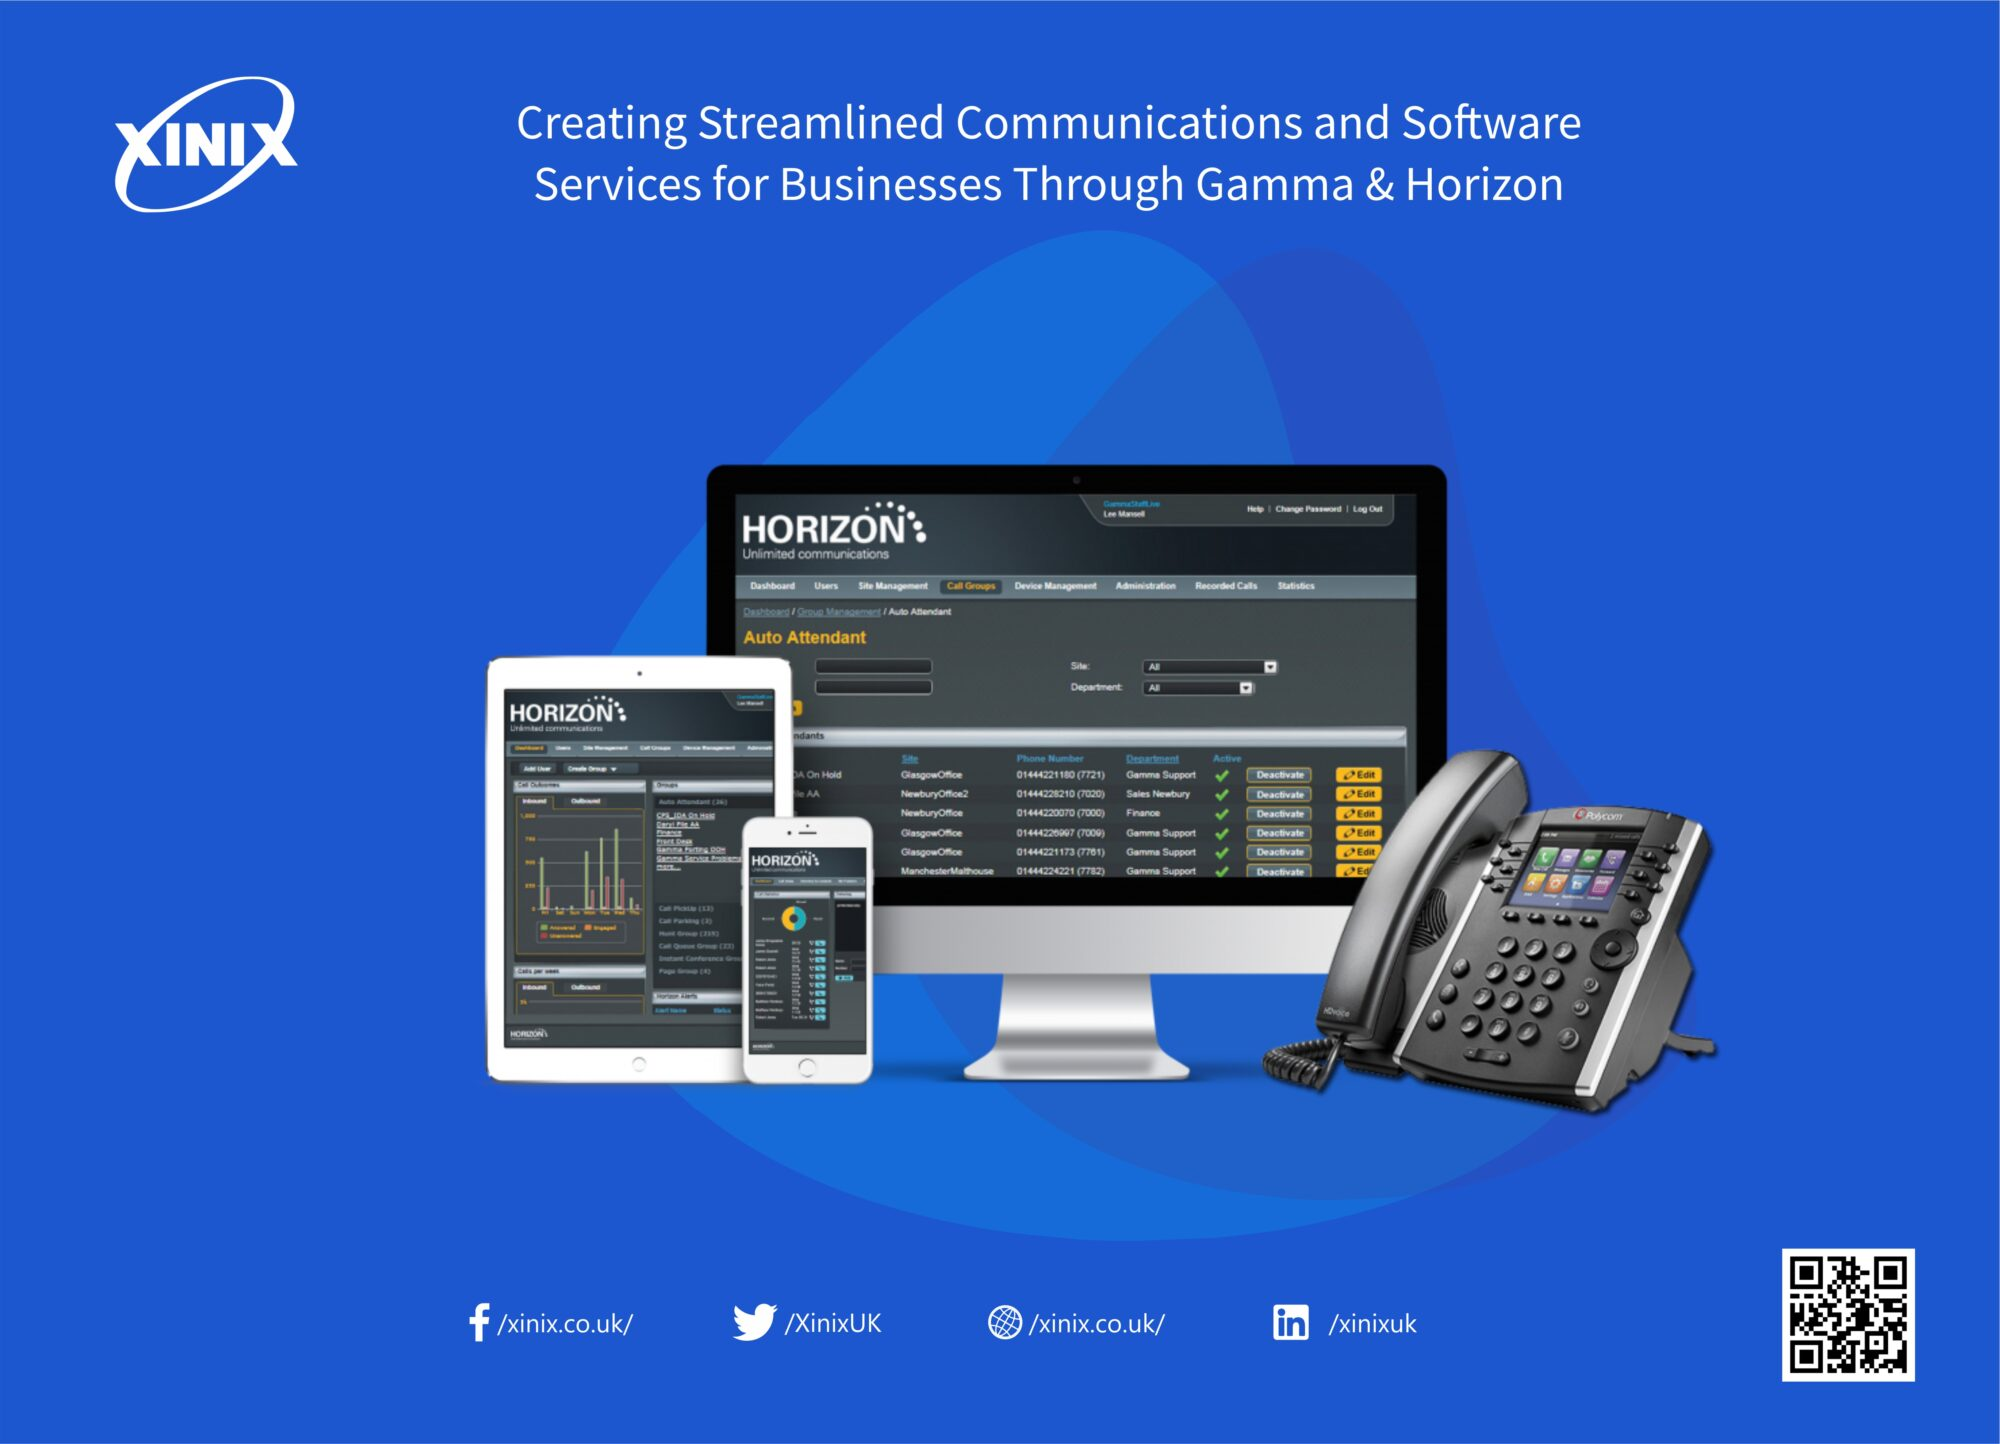 Creating Streamlined Communications and Software Services for Businesses Through Gamma & Horizon